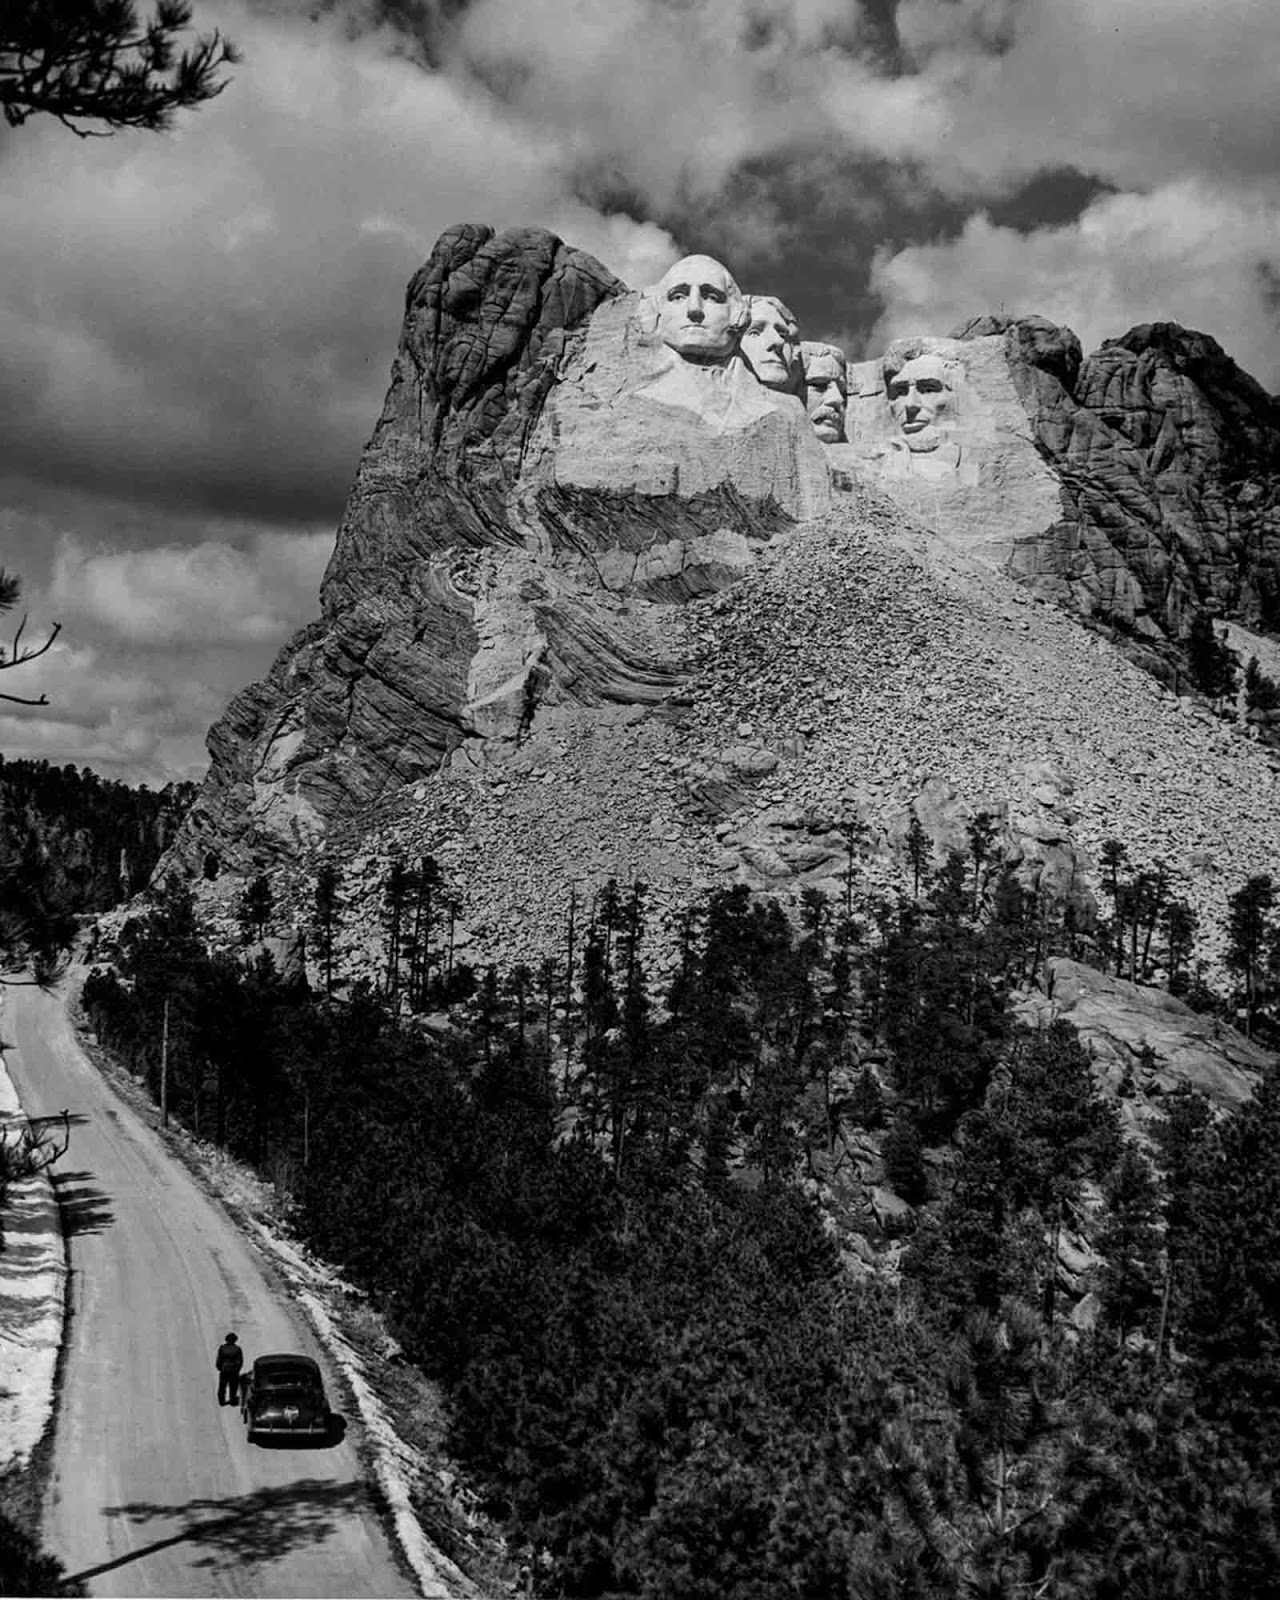 Mount Rushmore in 1941.